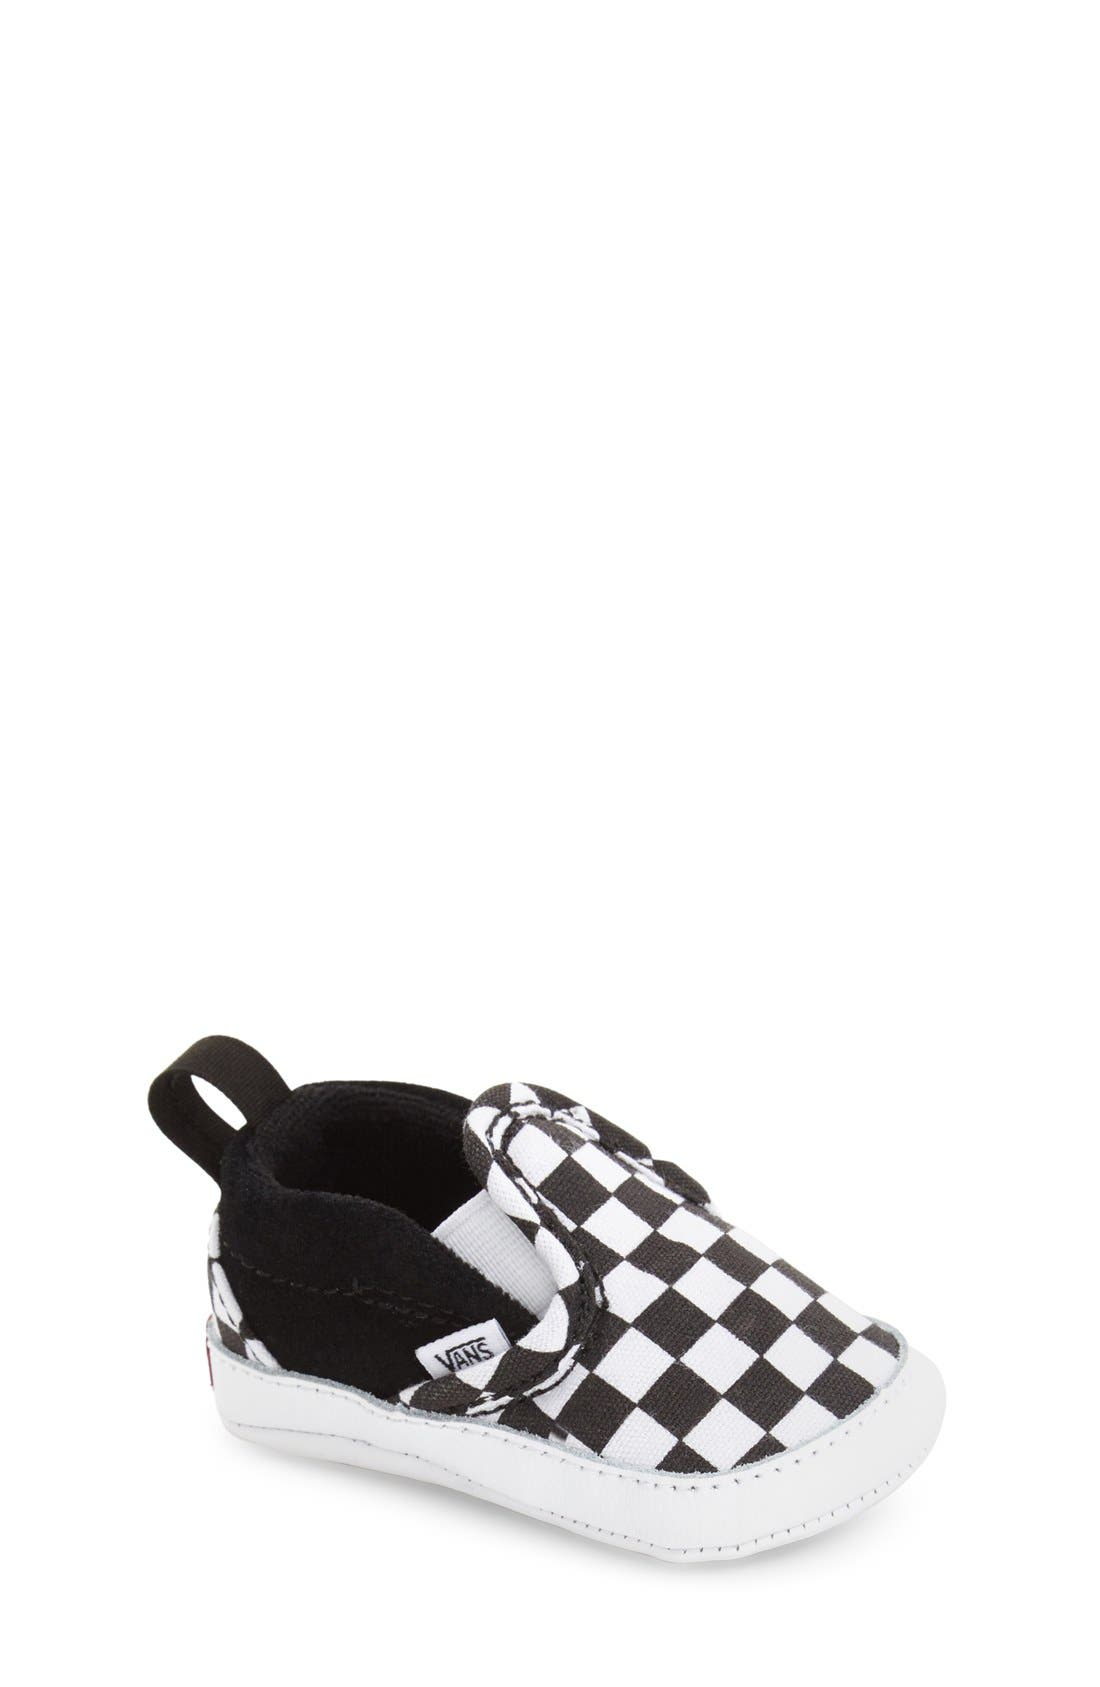 Slip-On Crib Shoe,                             Main thumbnail 1, color,                             CHECKER BLACK TRUE WHITE